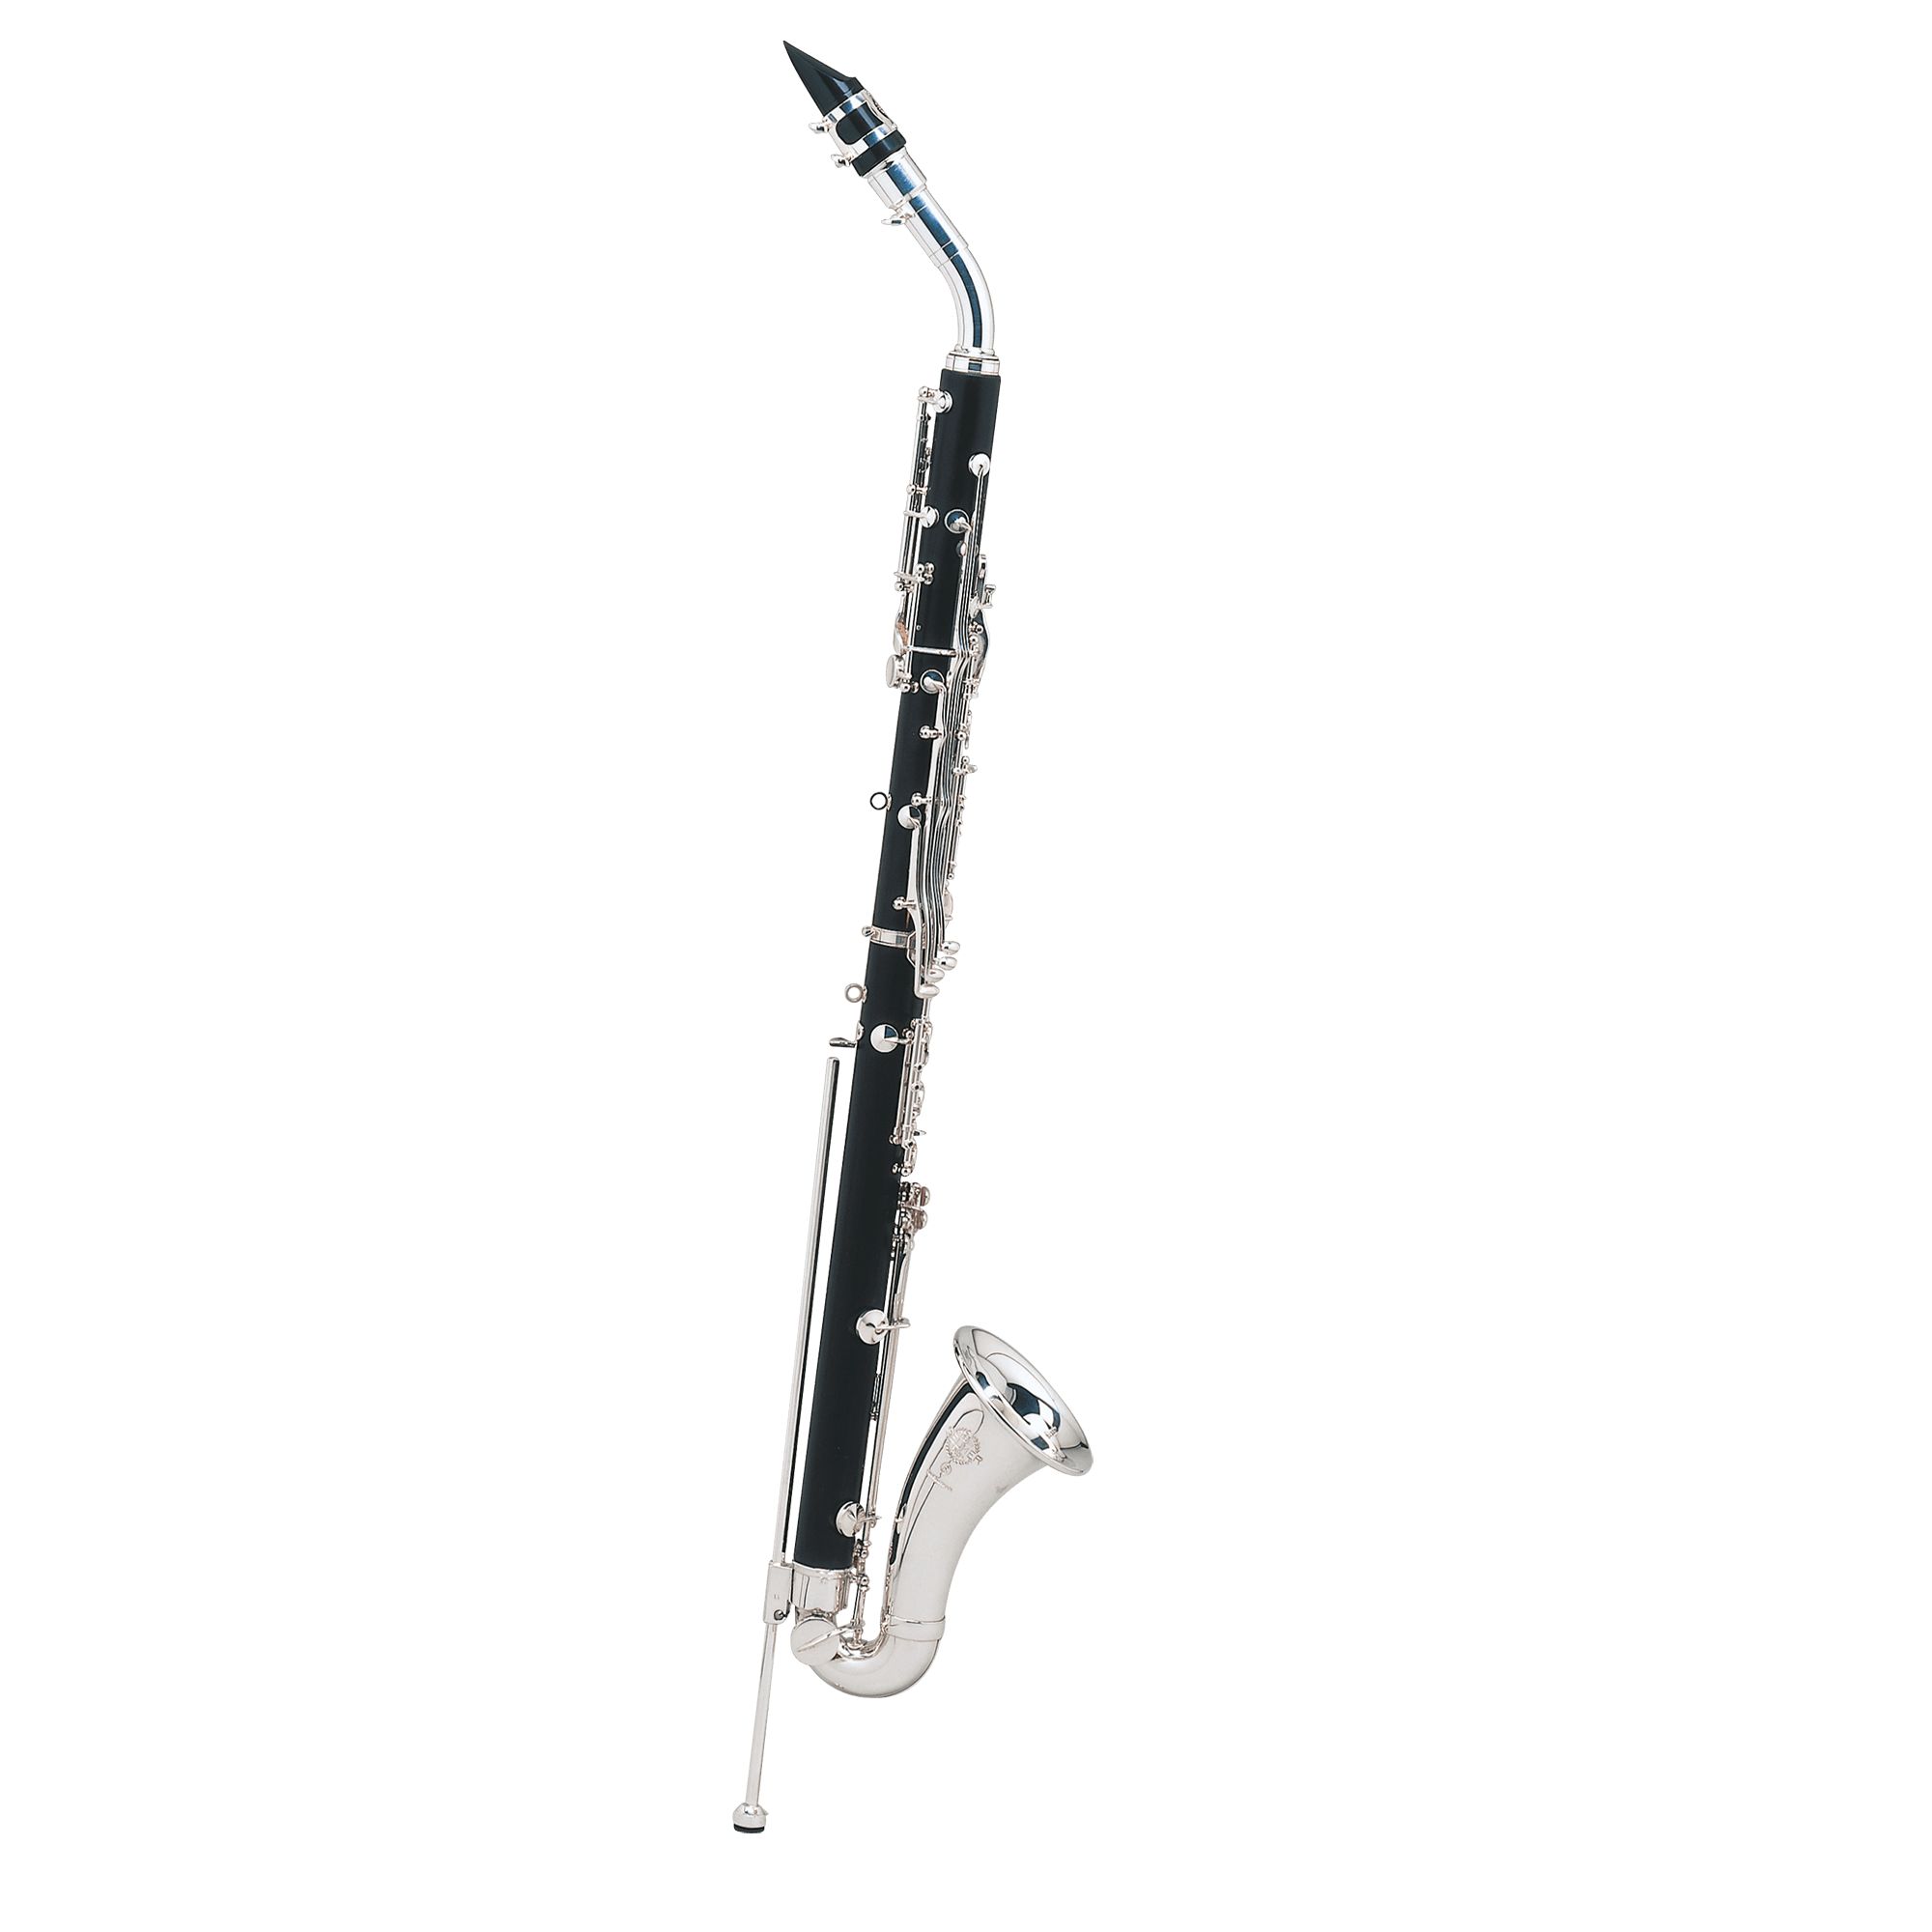 Selmer Paris - Model 19A Eb Alto Clarinet-Clarinet-Selmer Paris-Music Elements